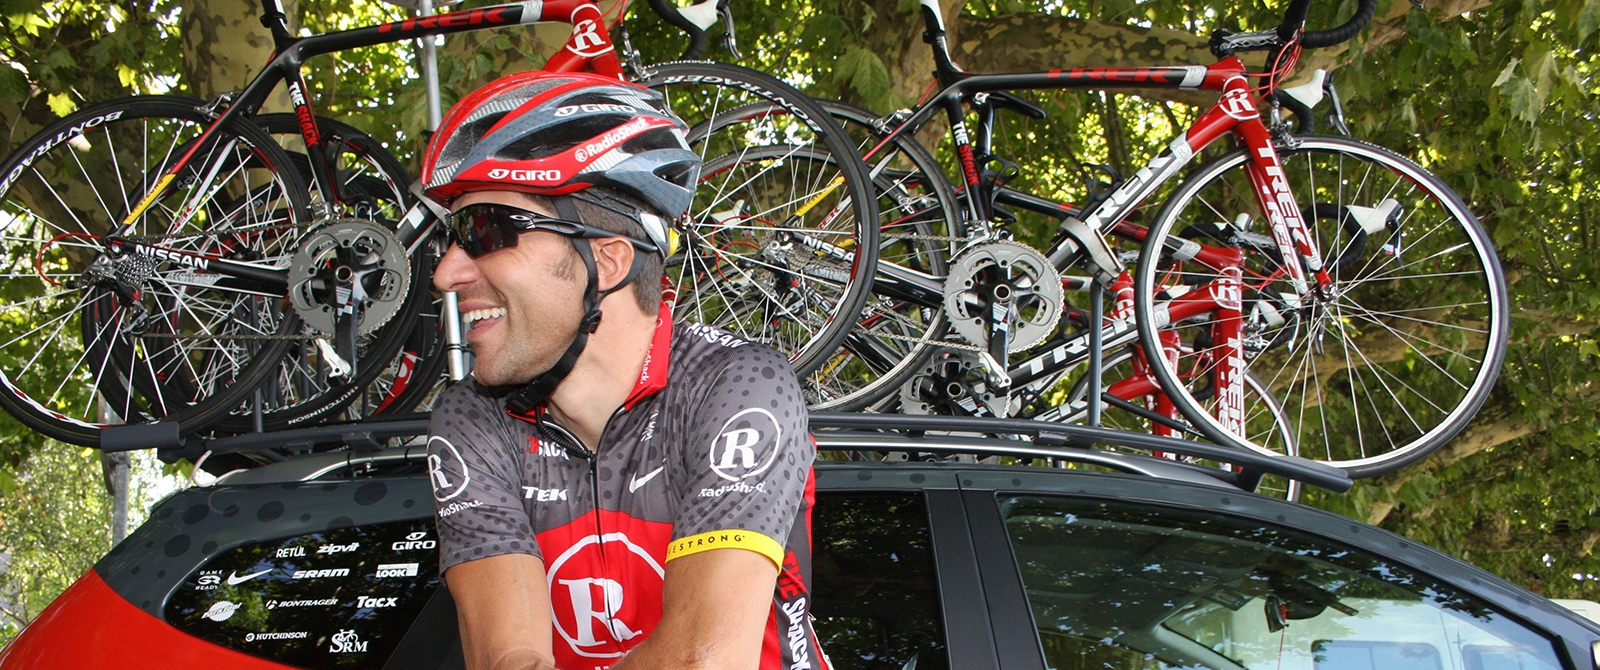 Ride with former pro cyclist Chechu Rubiera on Trek Travel's Vuelta a Espana race vacation